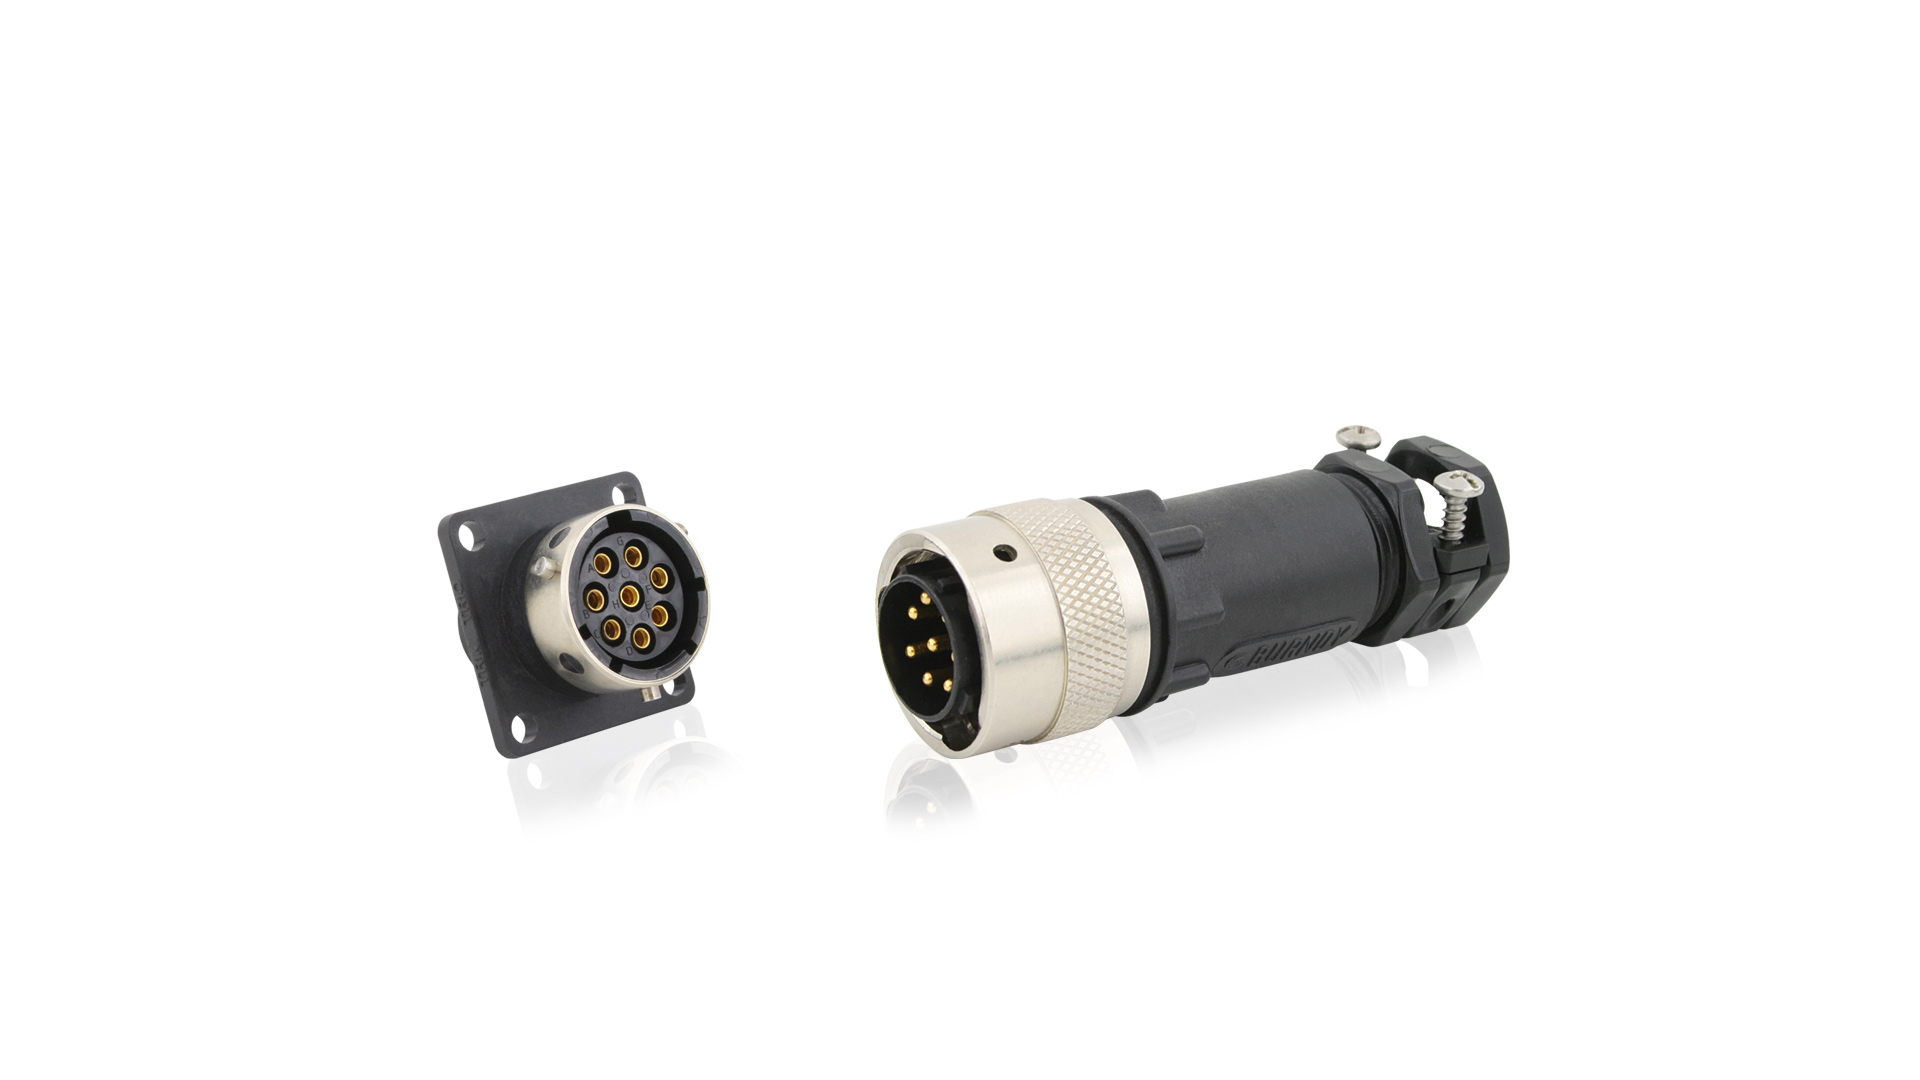 UTG connector